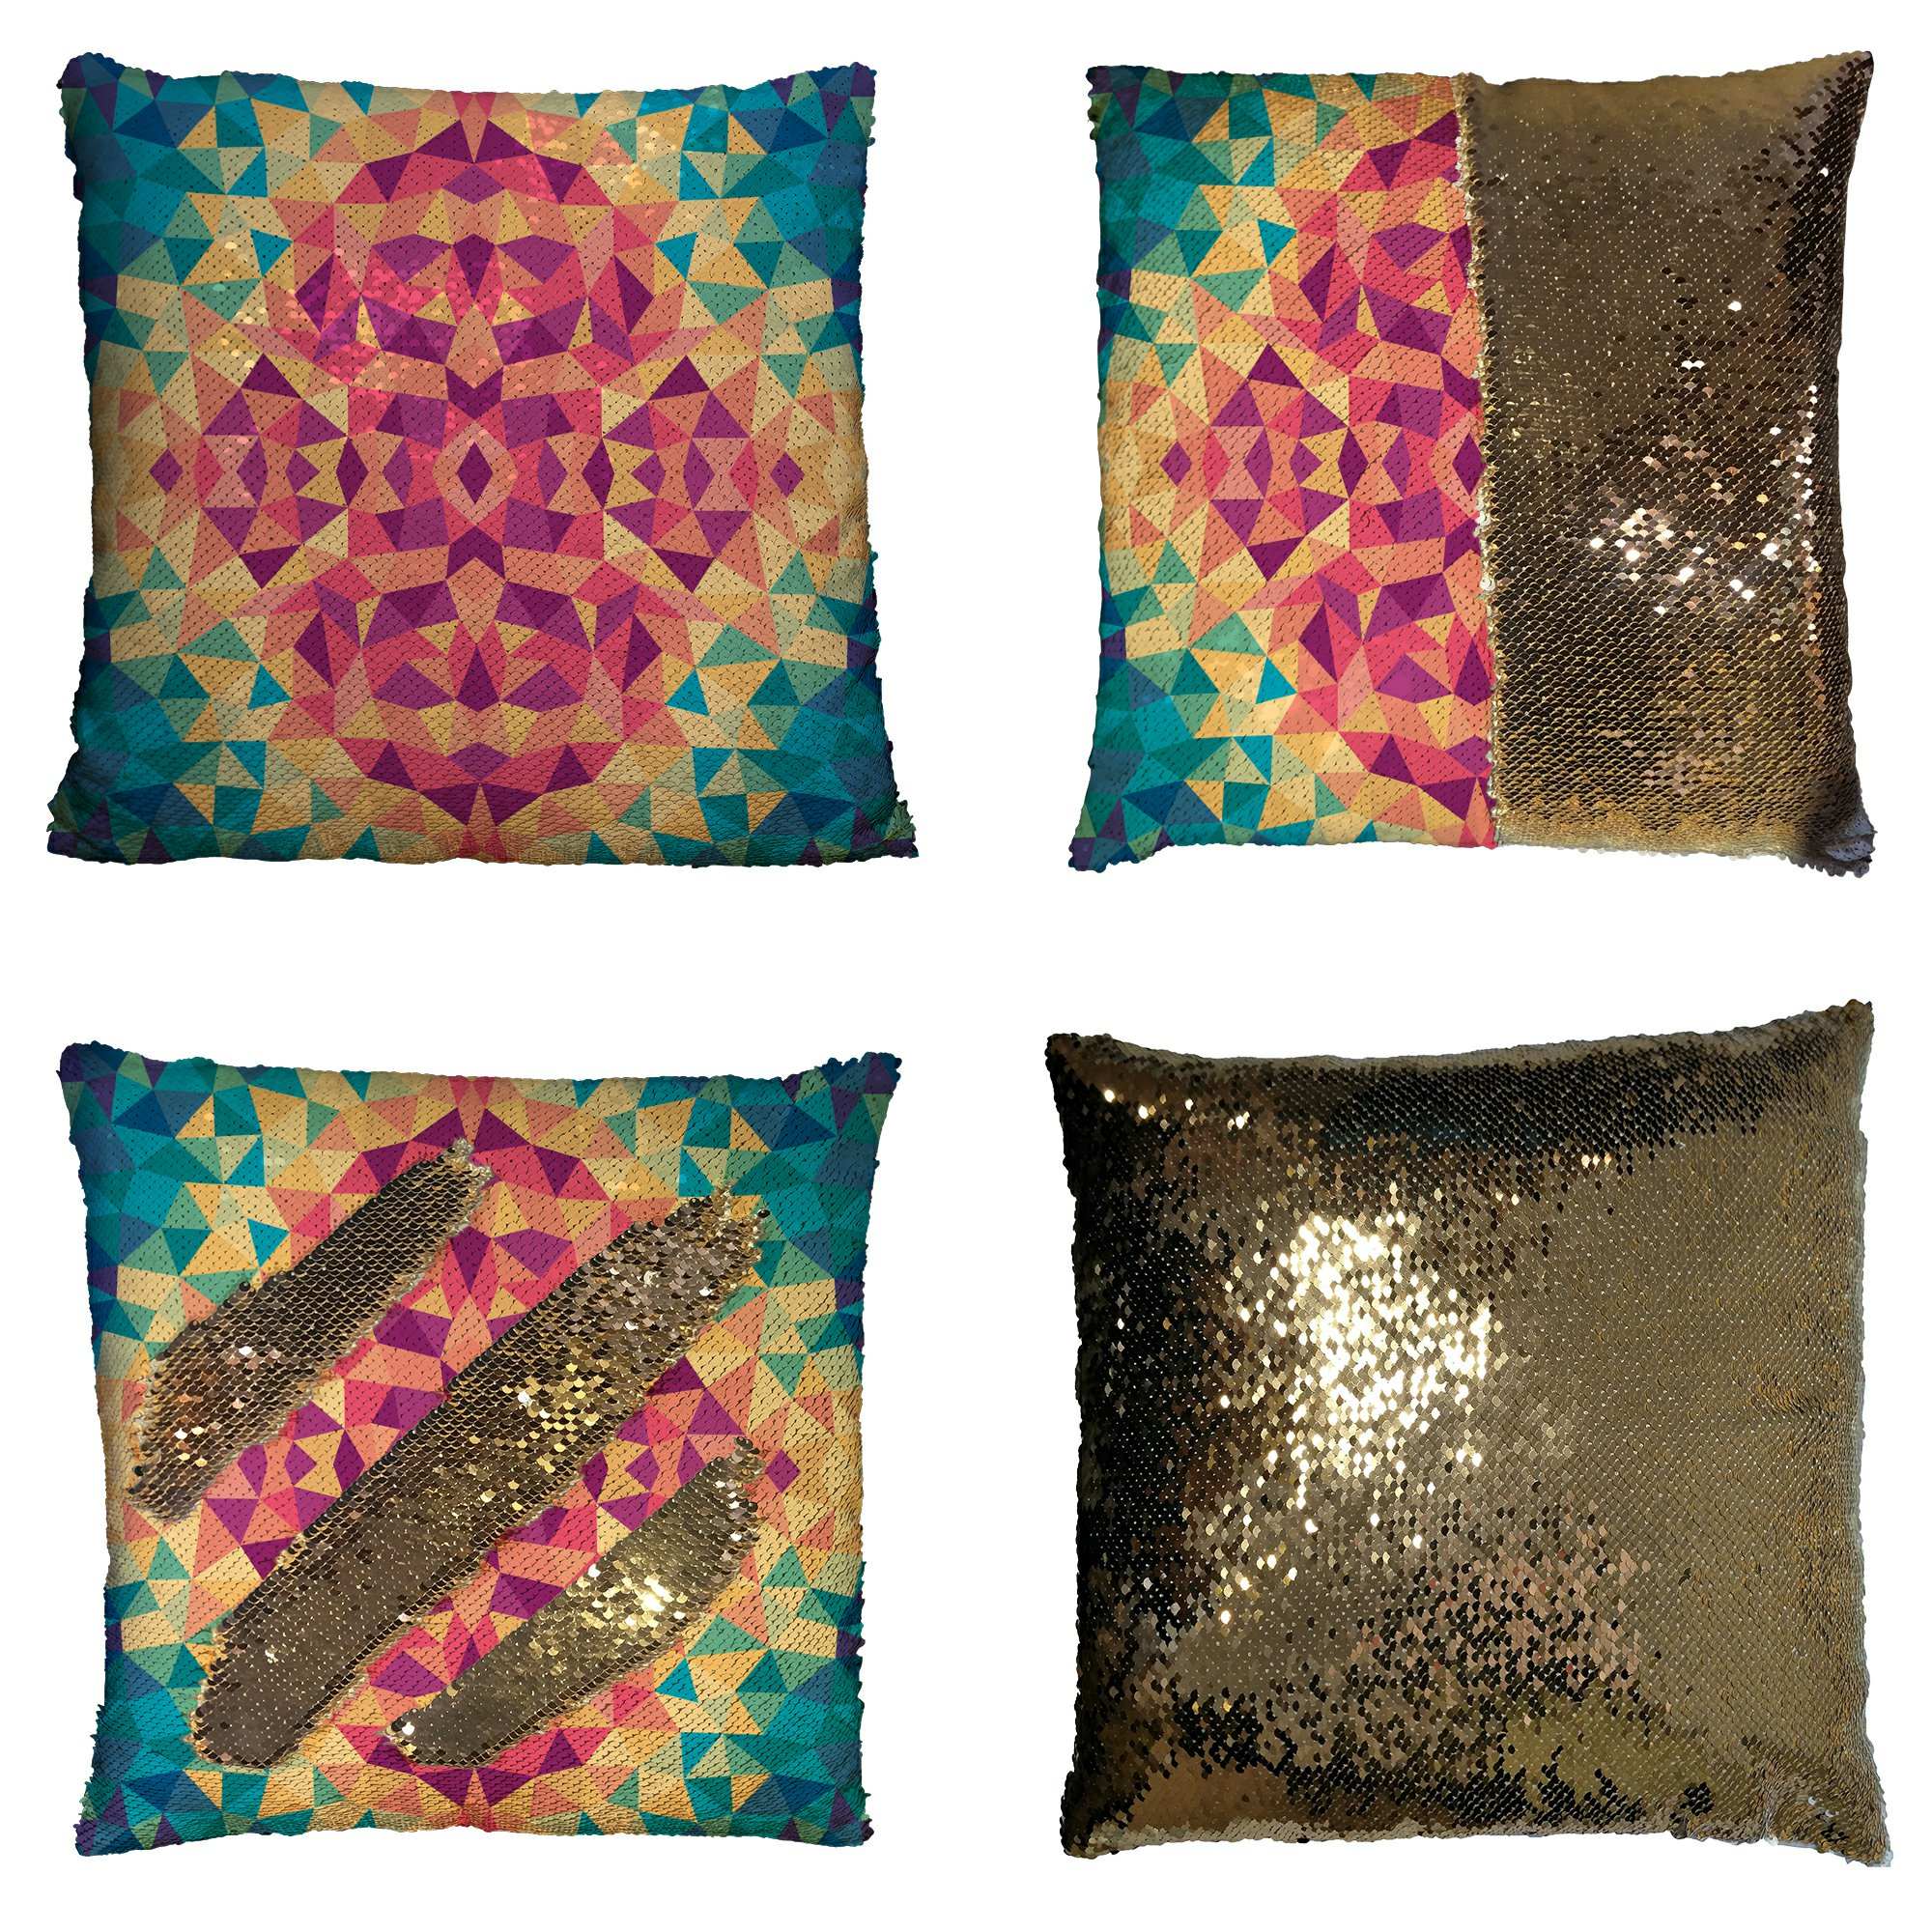 GCKG Diamond Shape Pillowcase, Multicolored Geometric Design Reversible Mermaid Sequin Pillow Case Home Decor Cushion Cover 16x16 inches